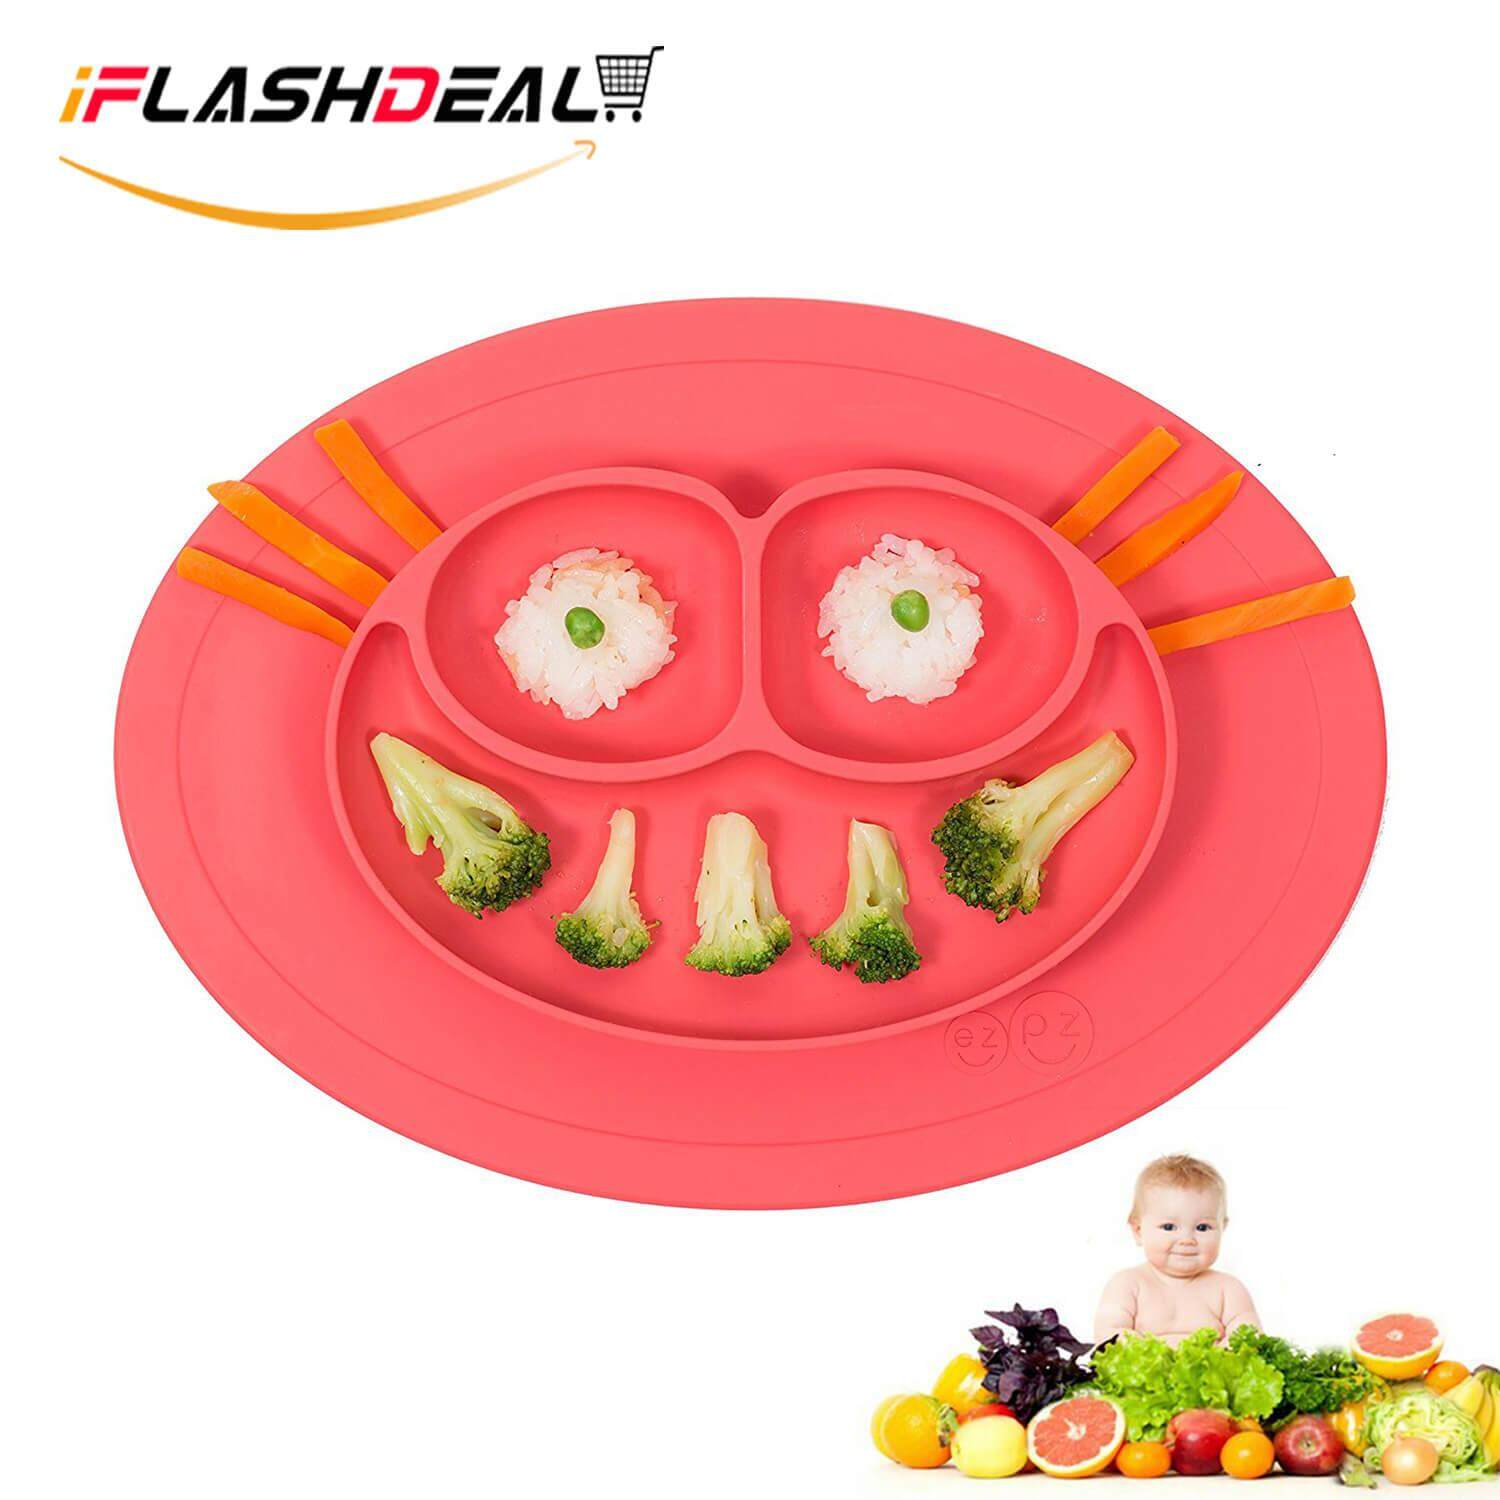 Iflashdeal Baby Silicone Plate Placemat Tray For Infants Toddlers And Kids Food Mats One Piece Happy Mat Suction Fits To Most Tables Highchair Non Slip Baby Feeding Fda Approved By Iflashdeal.